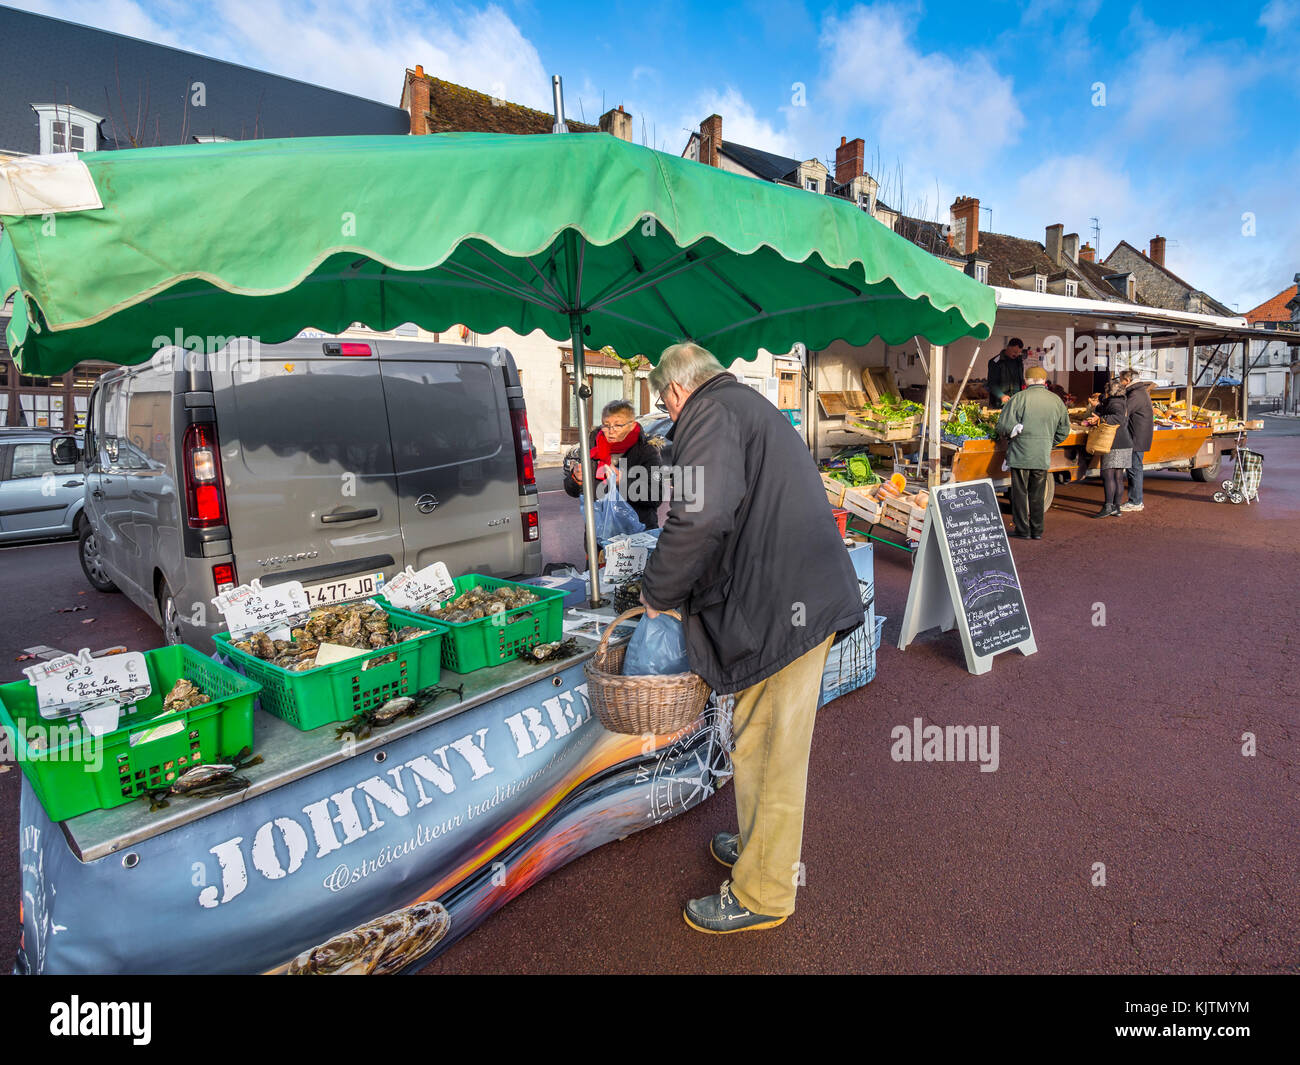 Buying oysters at market - France. - Stock Image